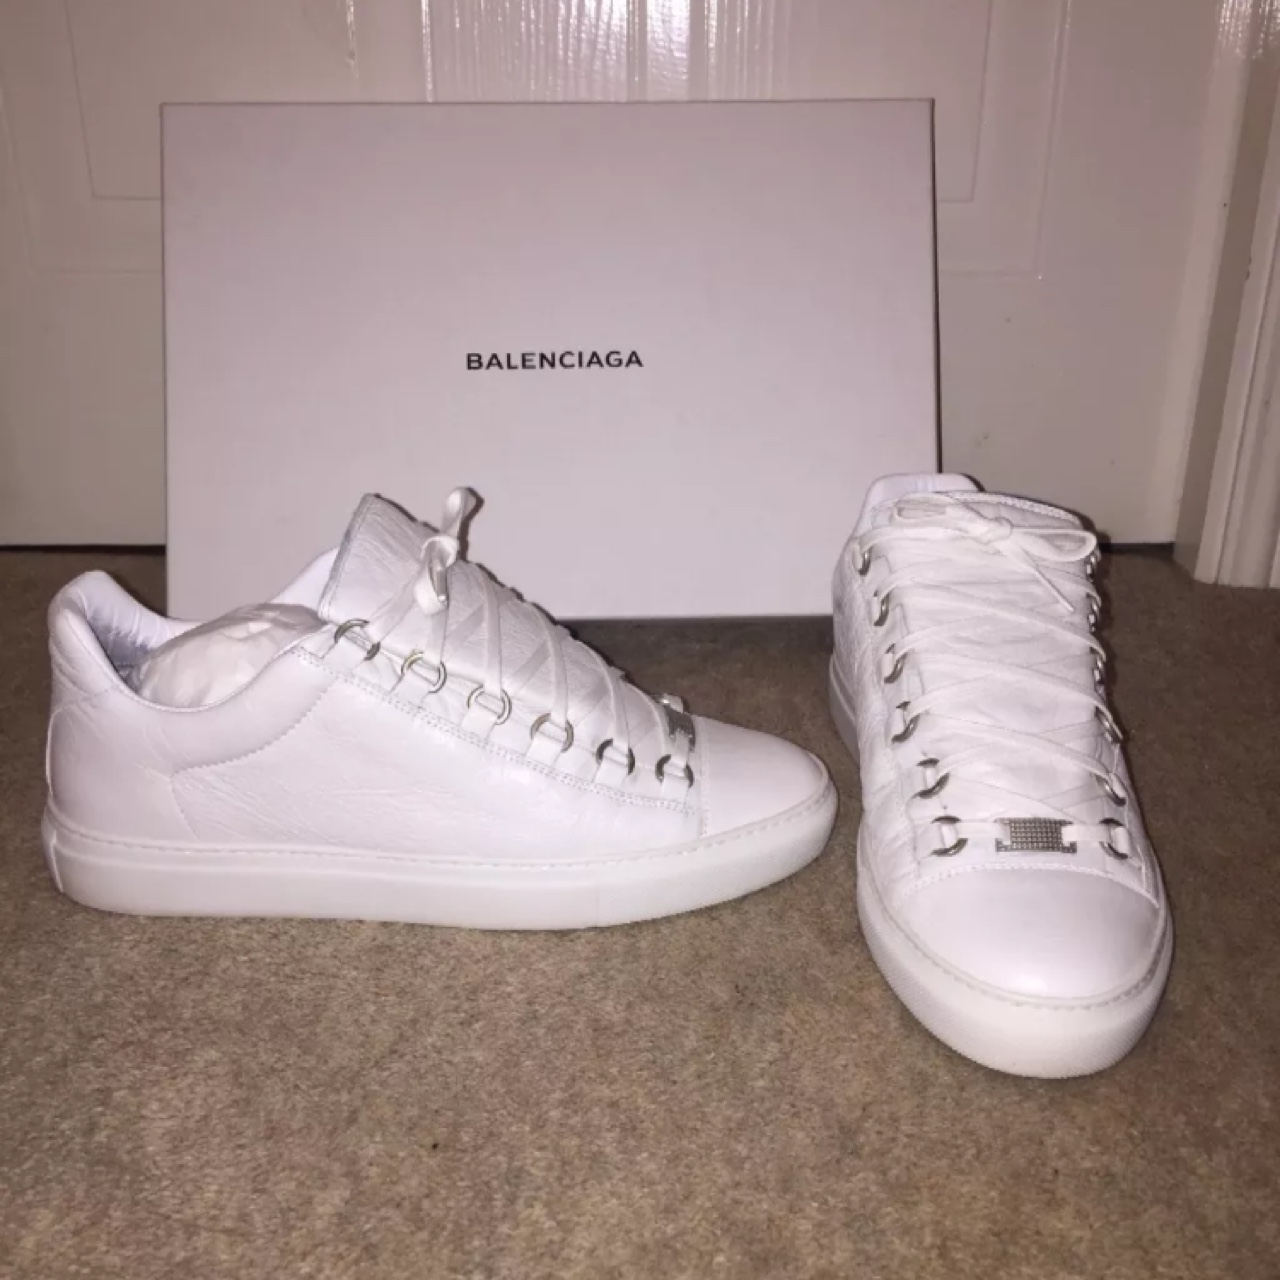 balenciaga arena white low